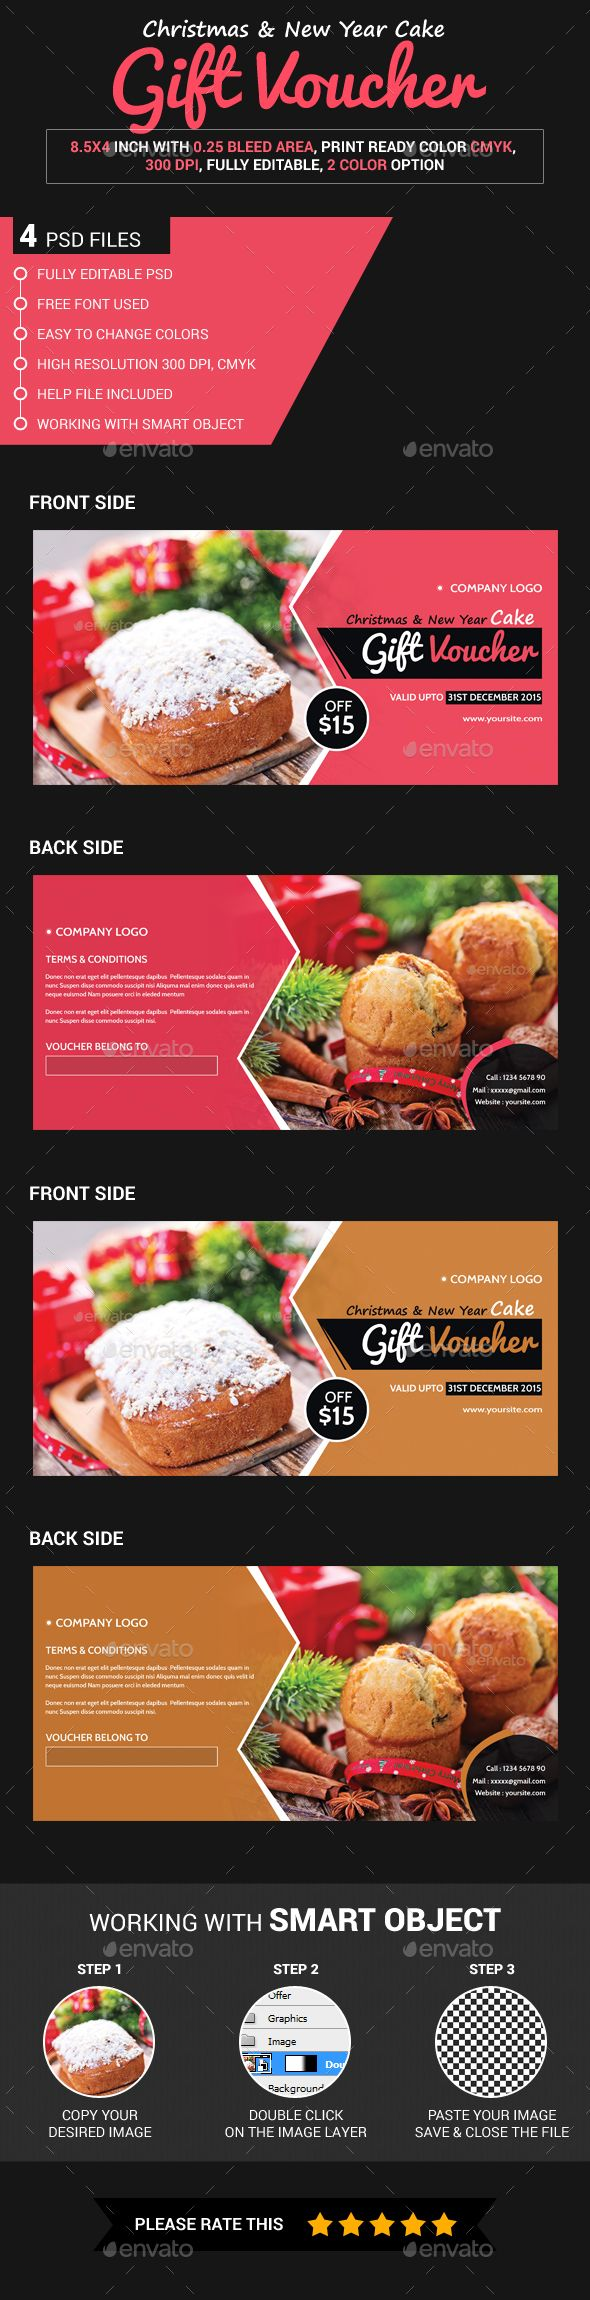 Christmas & New Year Cake Gift Voucher - Loyalty Cards Cards & Invites